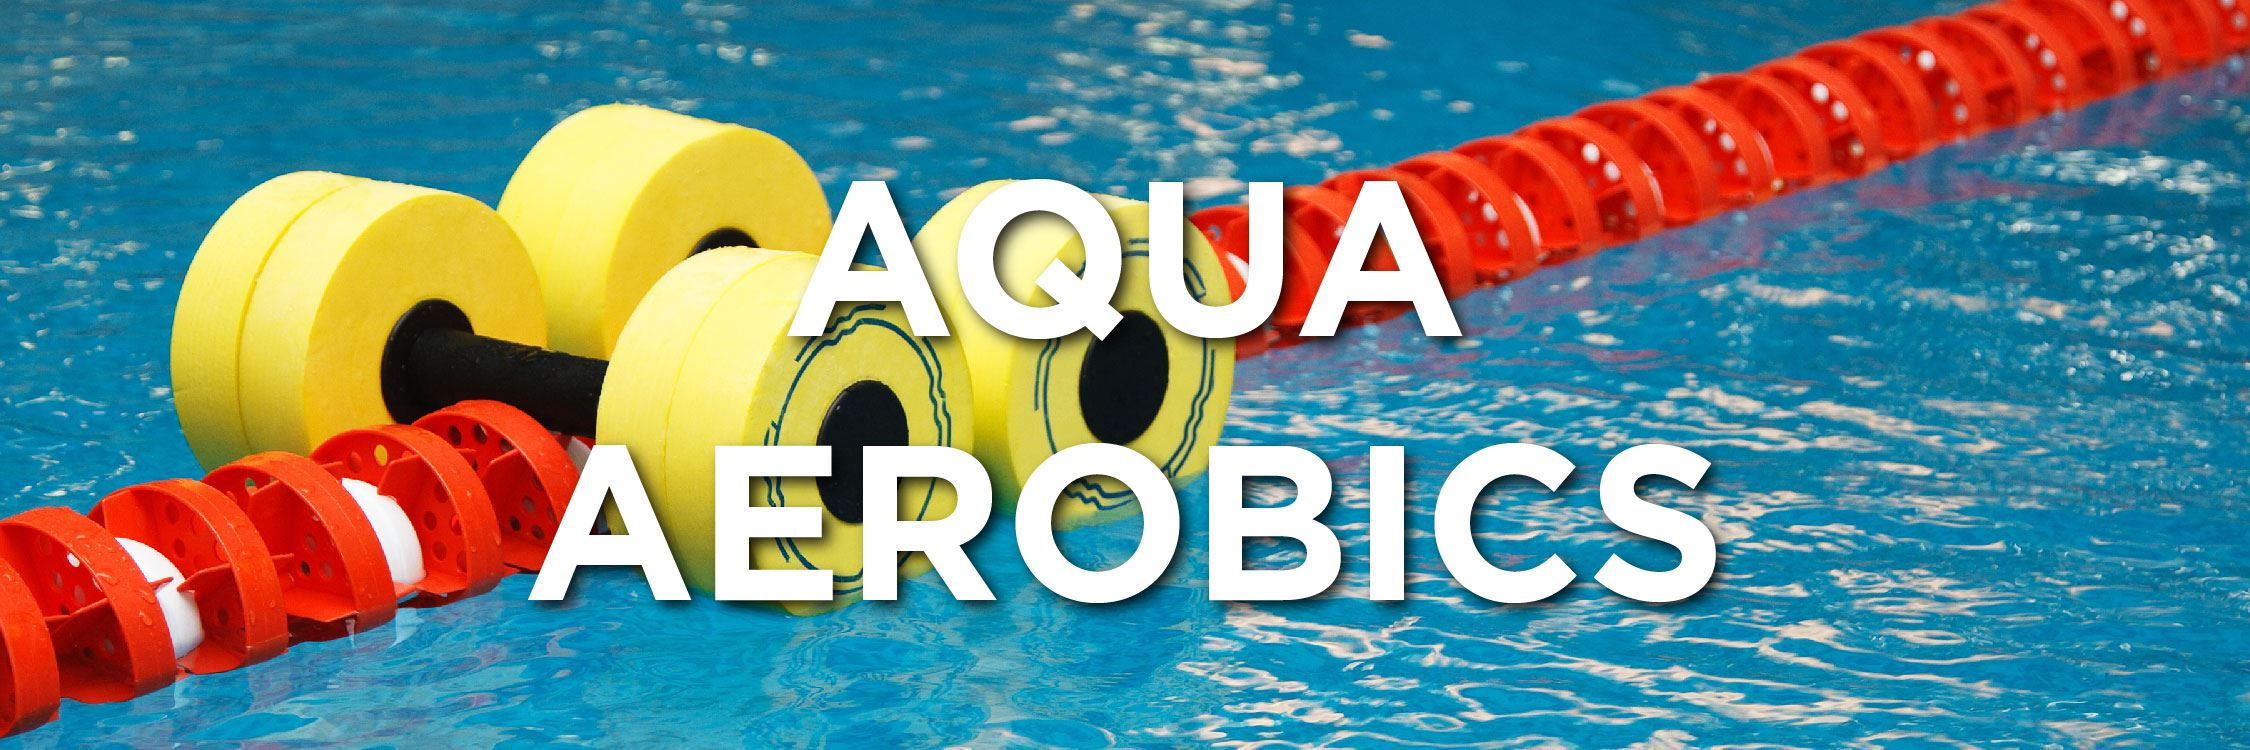 Aqua Aerobics Web Strip-03